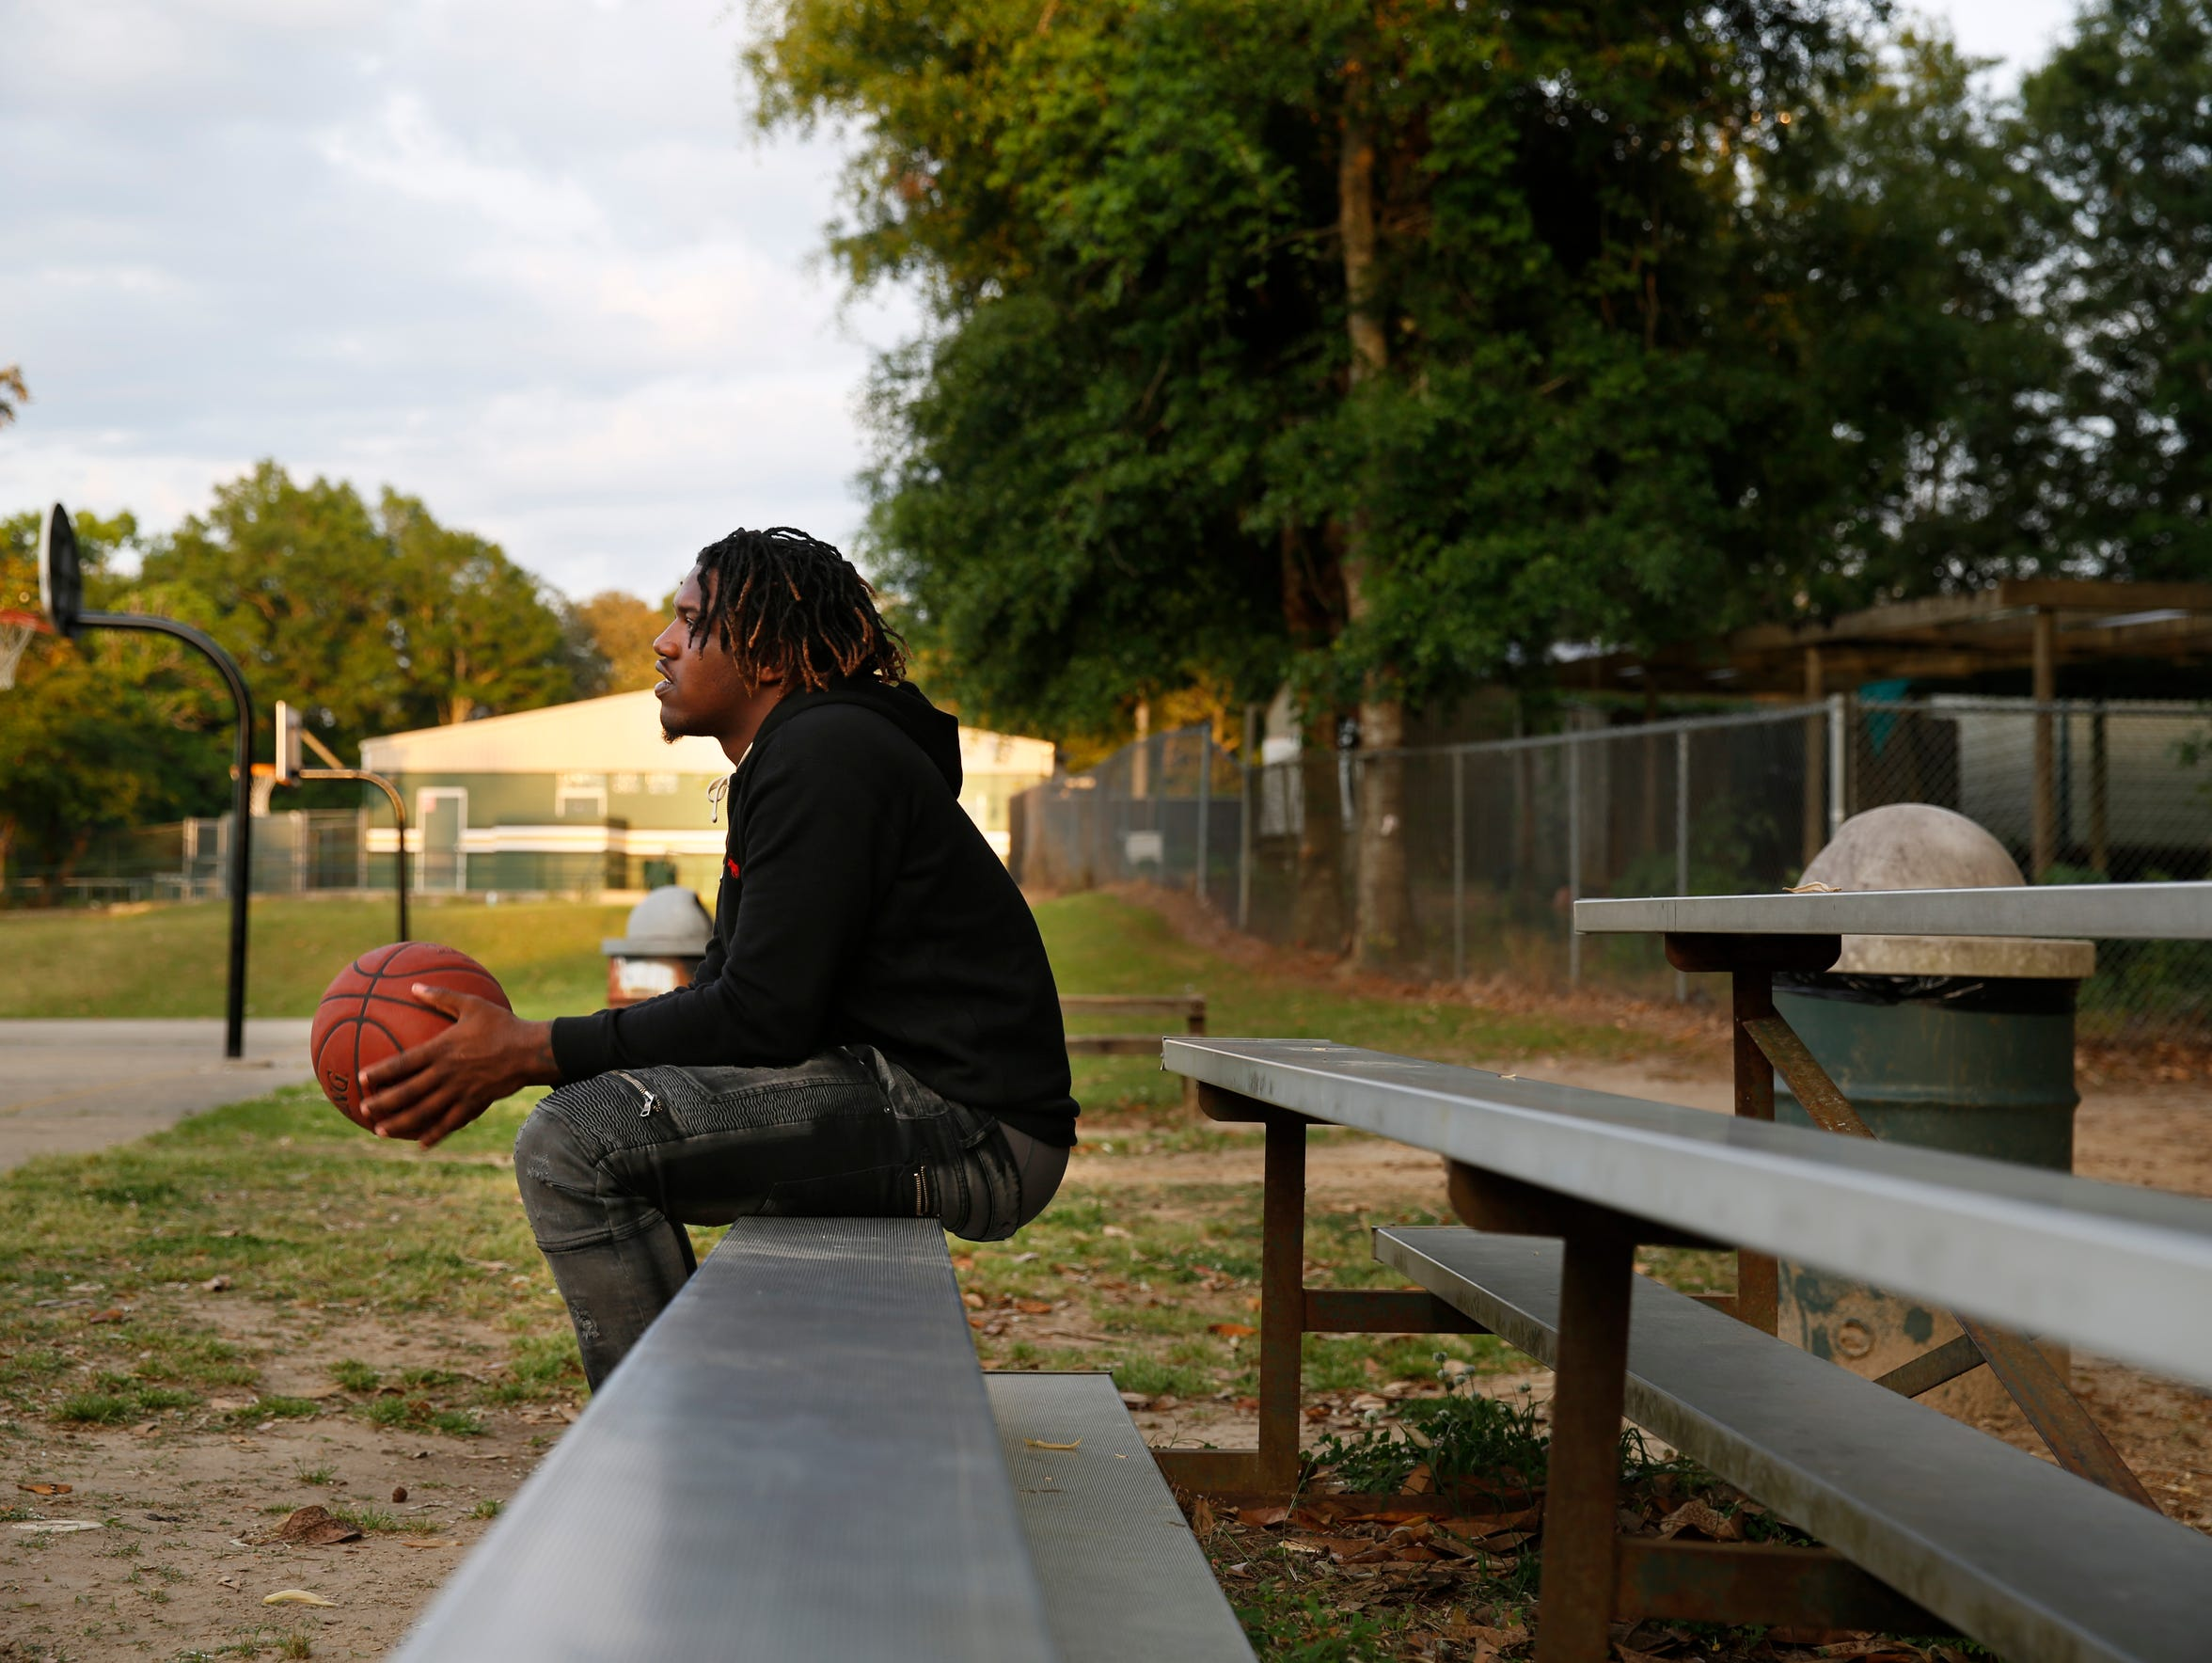 Tyler Farmer looks out over the outdoor basketball